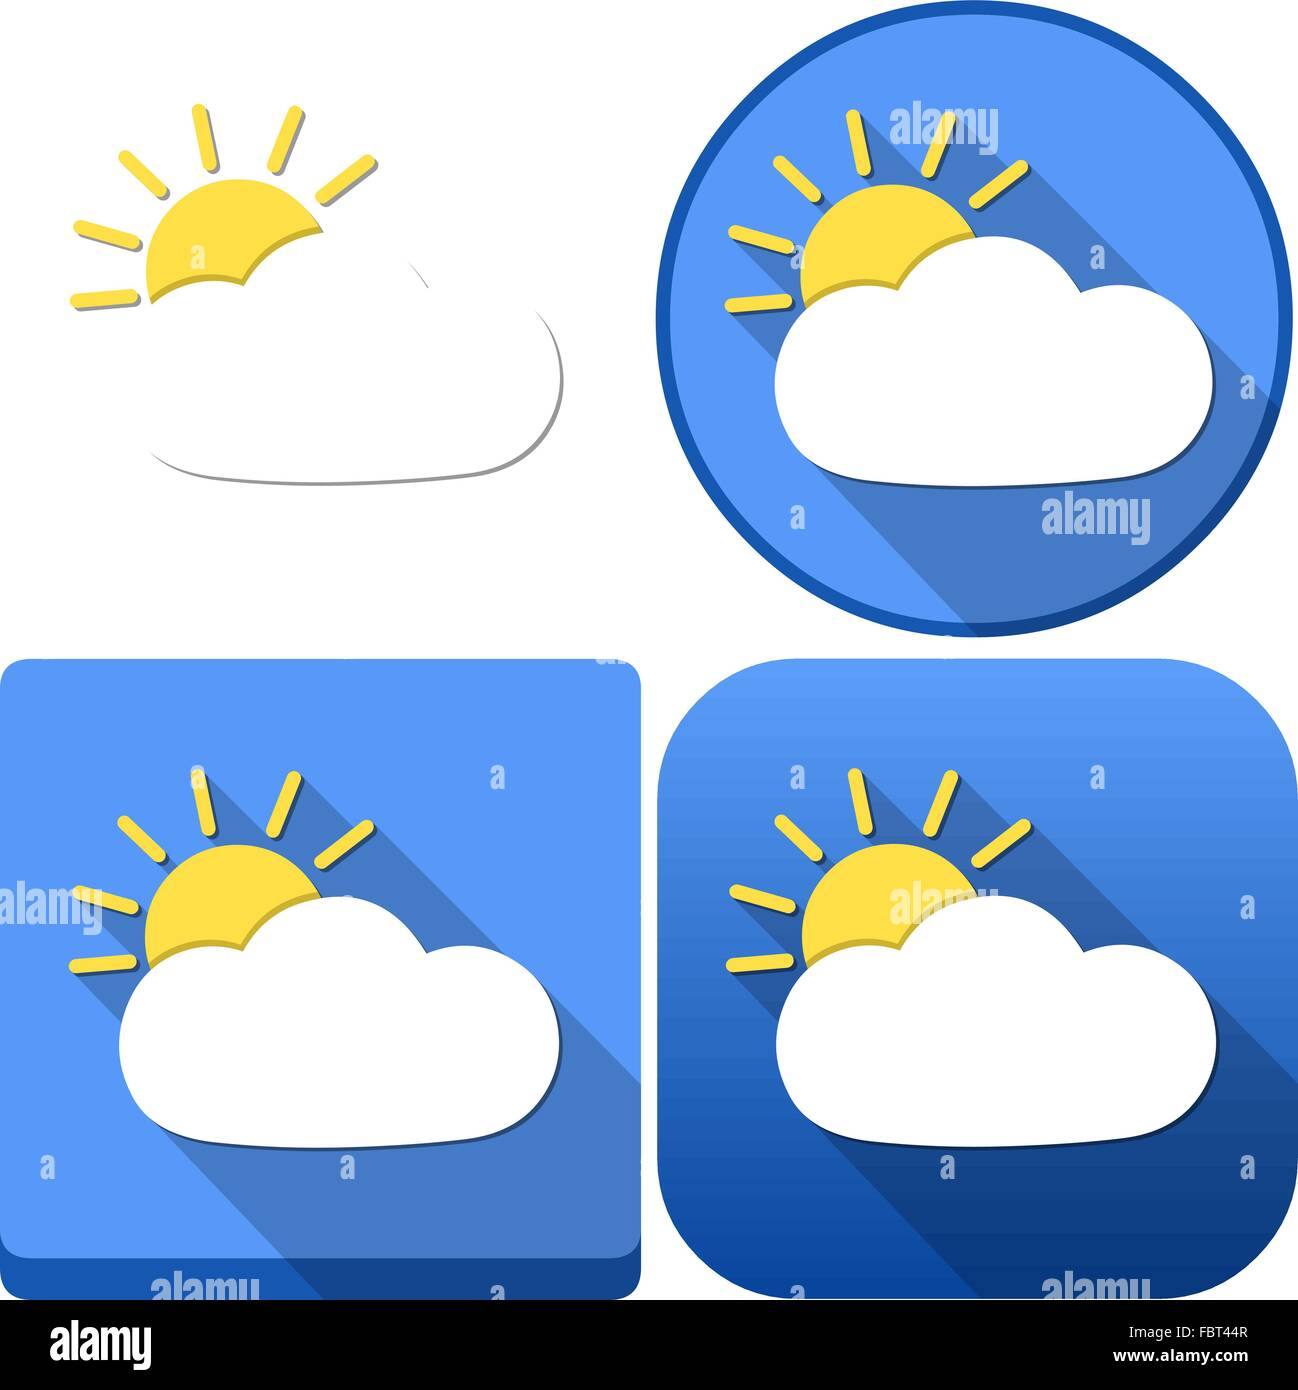 Vector illustration pack of a cloud and sun as the weather and icons for android and ios. - Stock Vector